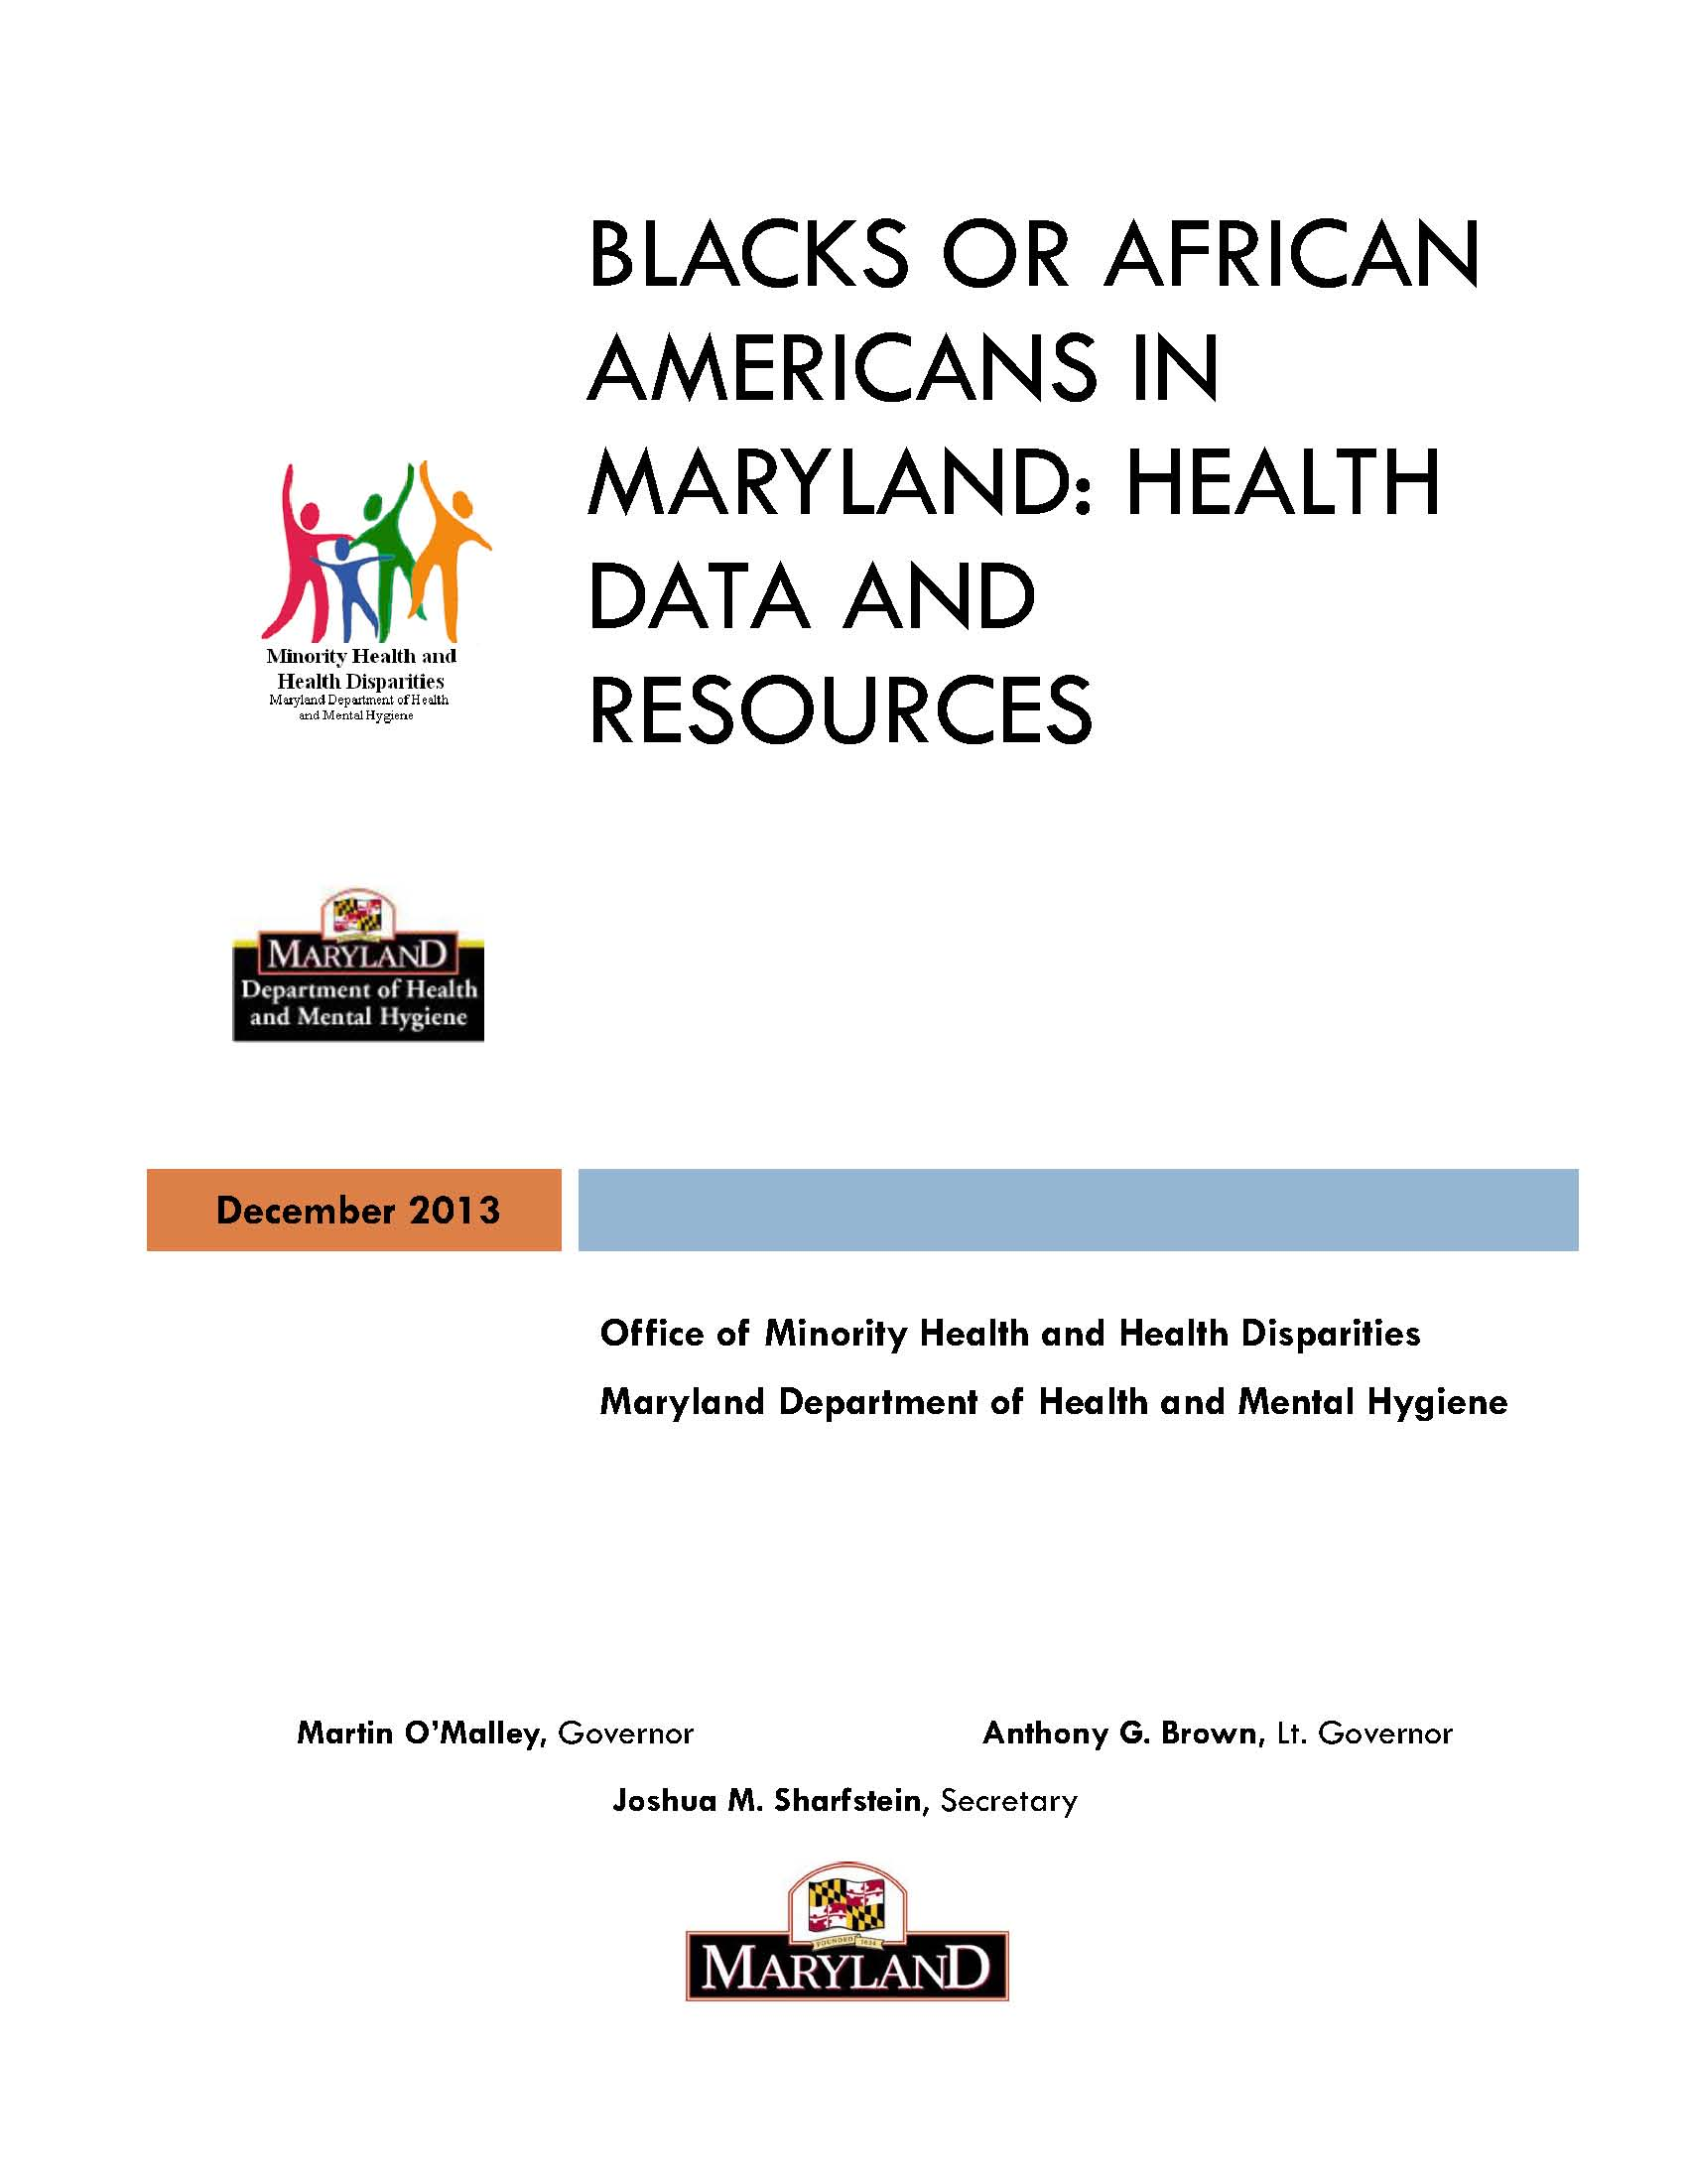 Maryland Black or African American Data Report December 2013 Cover Page.jpg